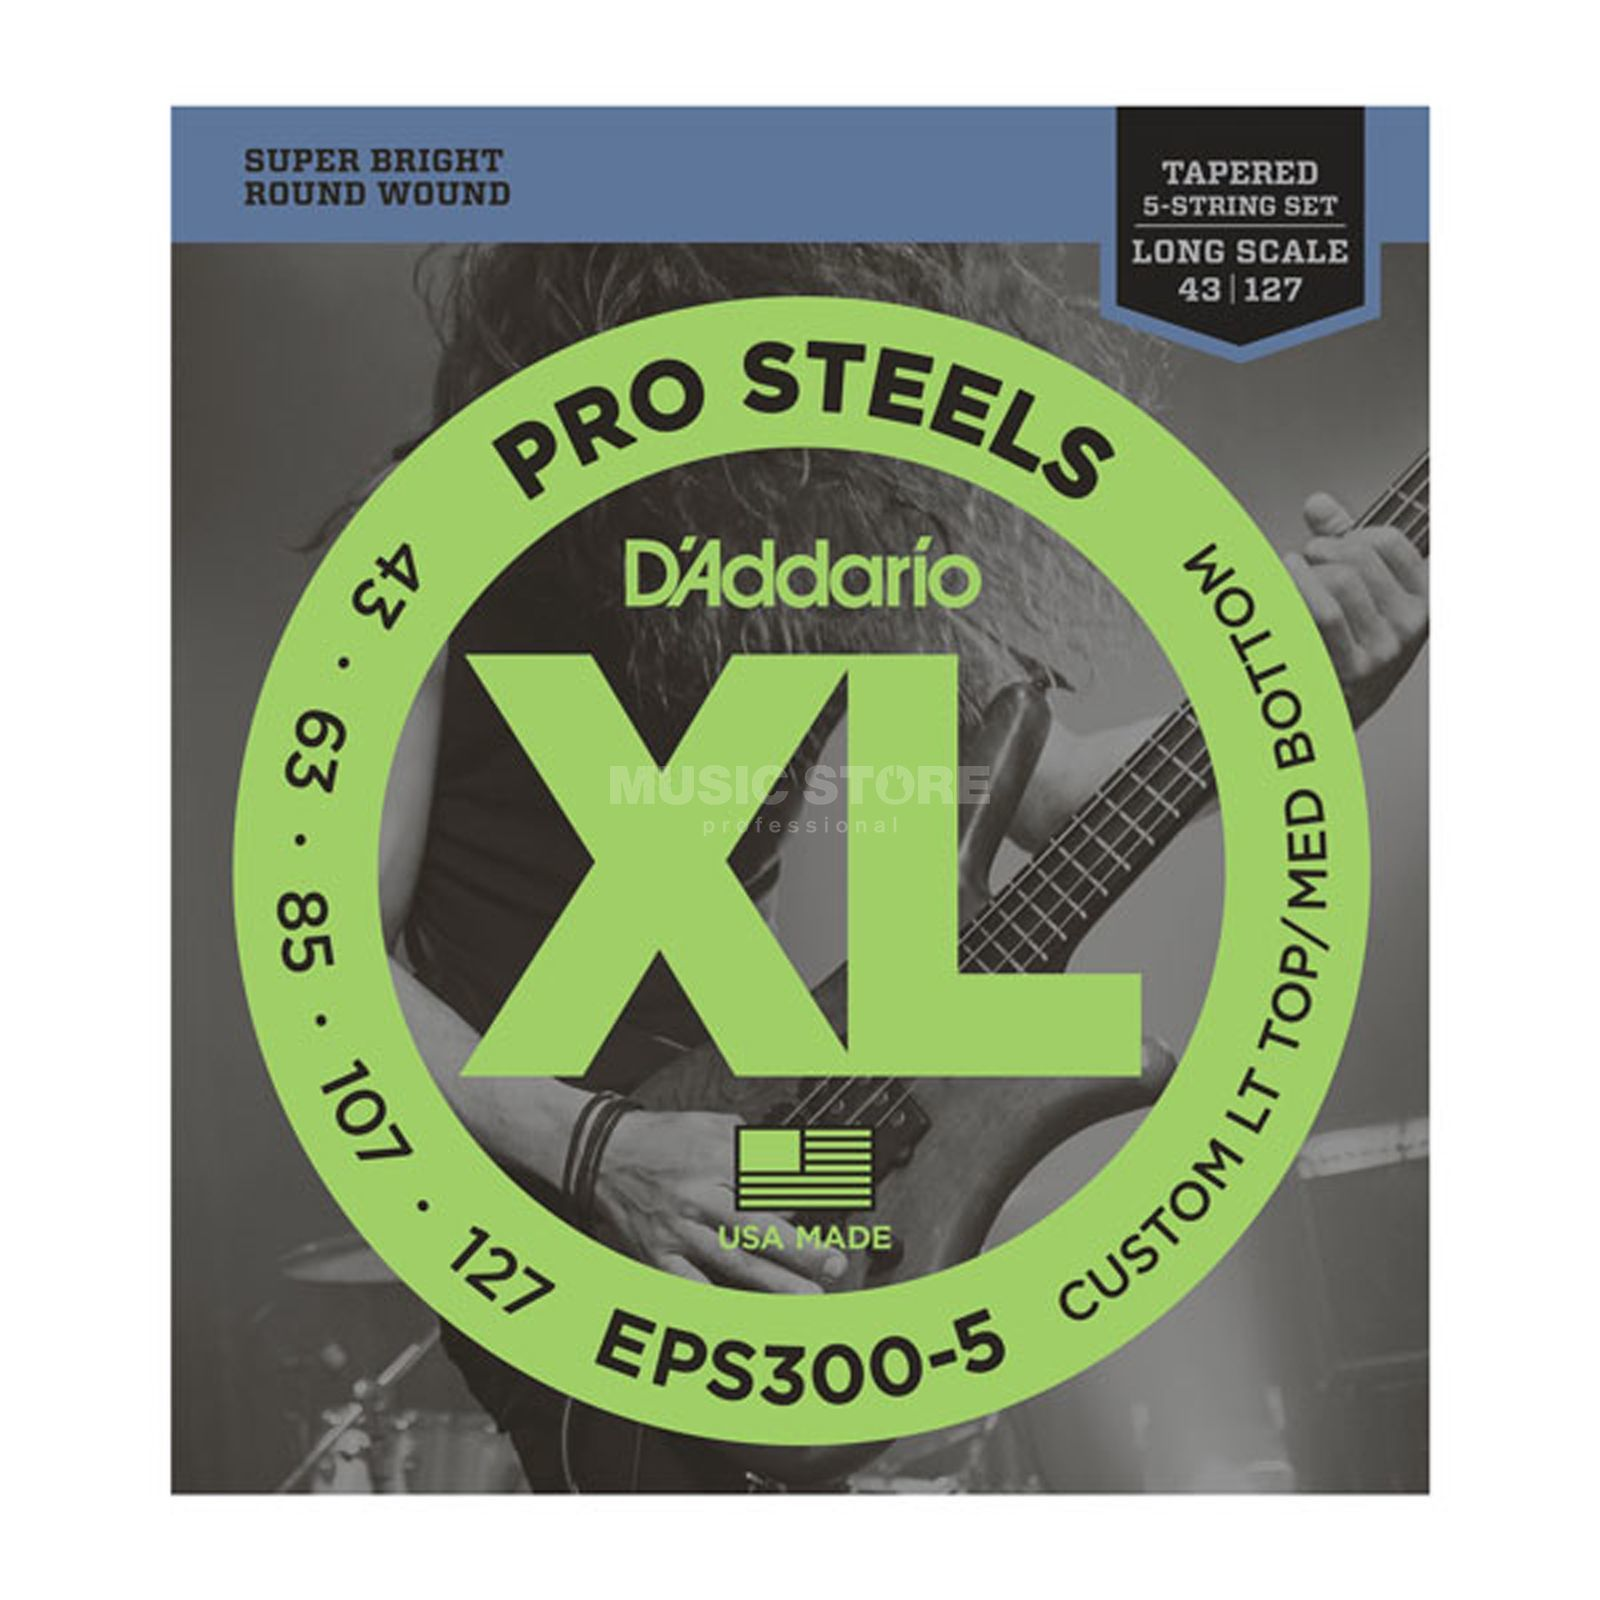 D'Addario Bass Strings Pro Steels 43-130 43-60-85-107-130, EPS300-5 Product Image